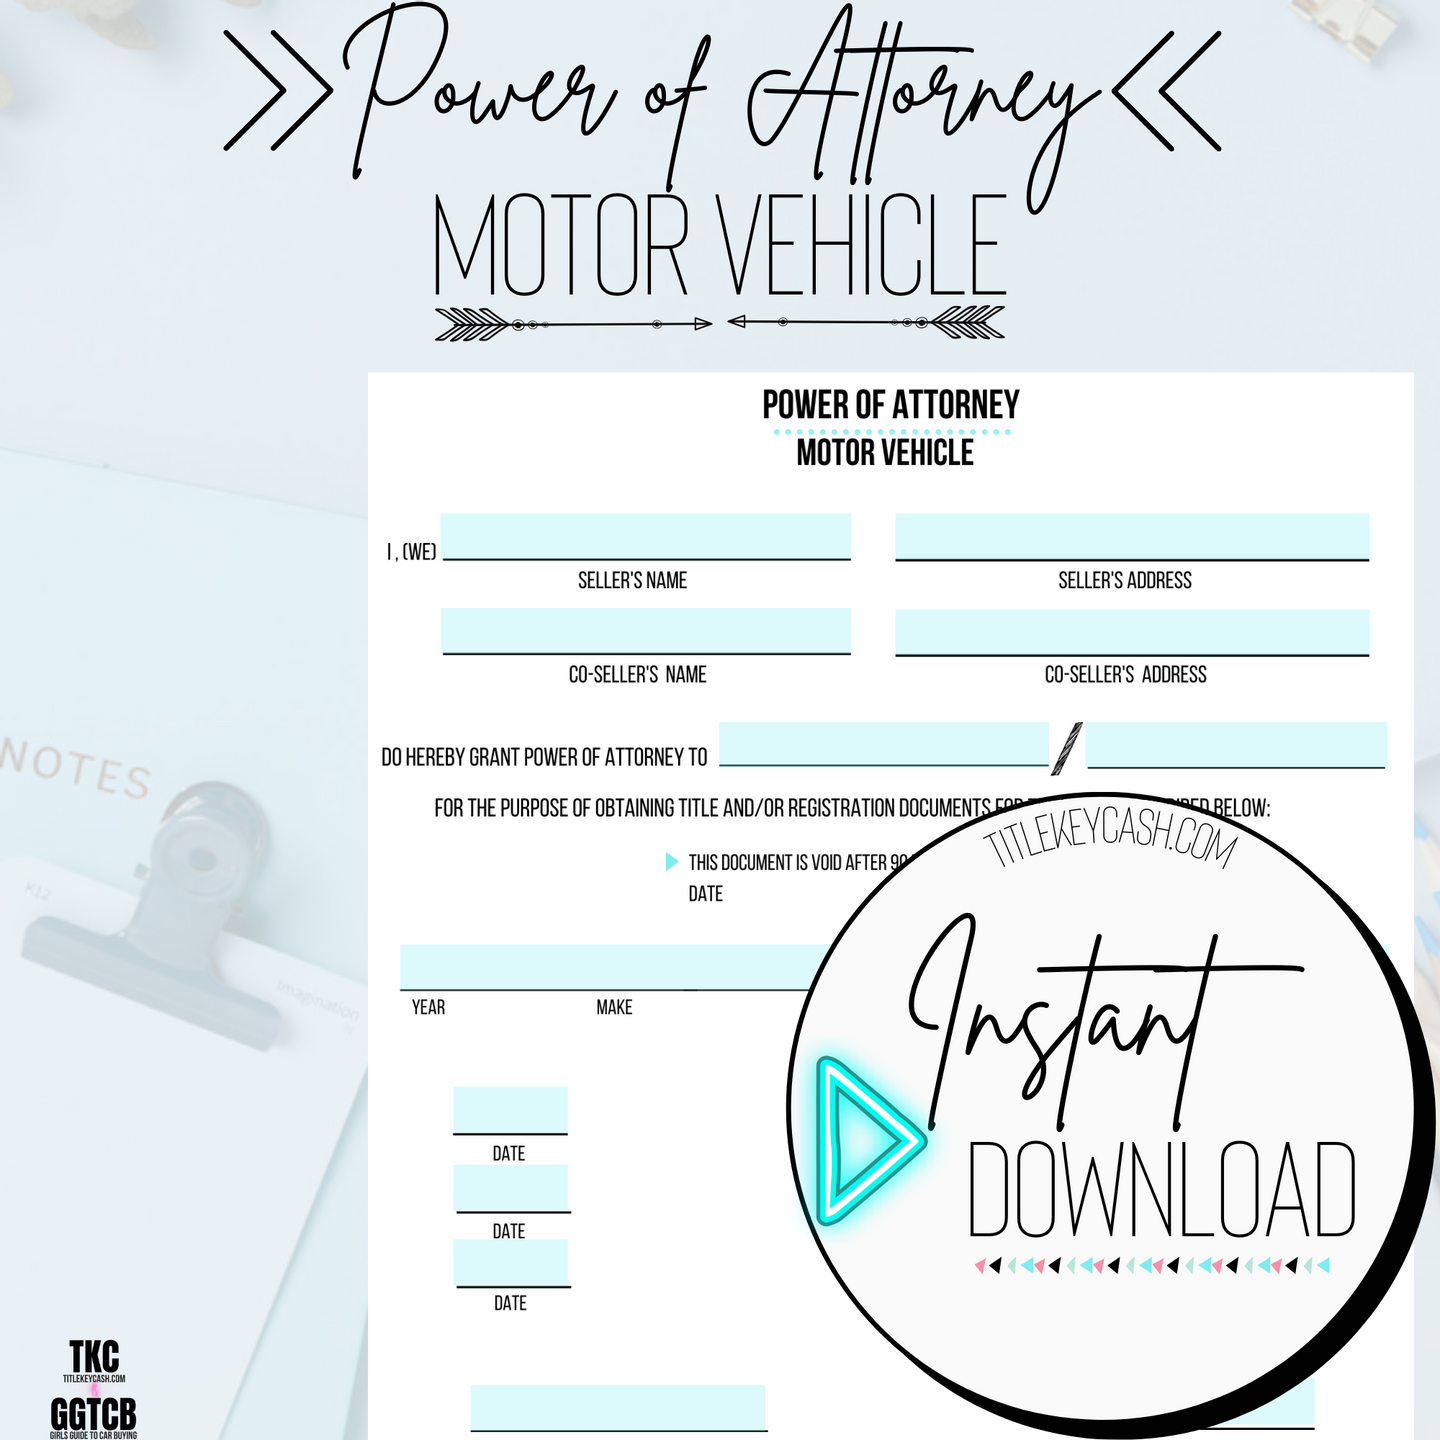 Power of Attorney for Motor Vehicle